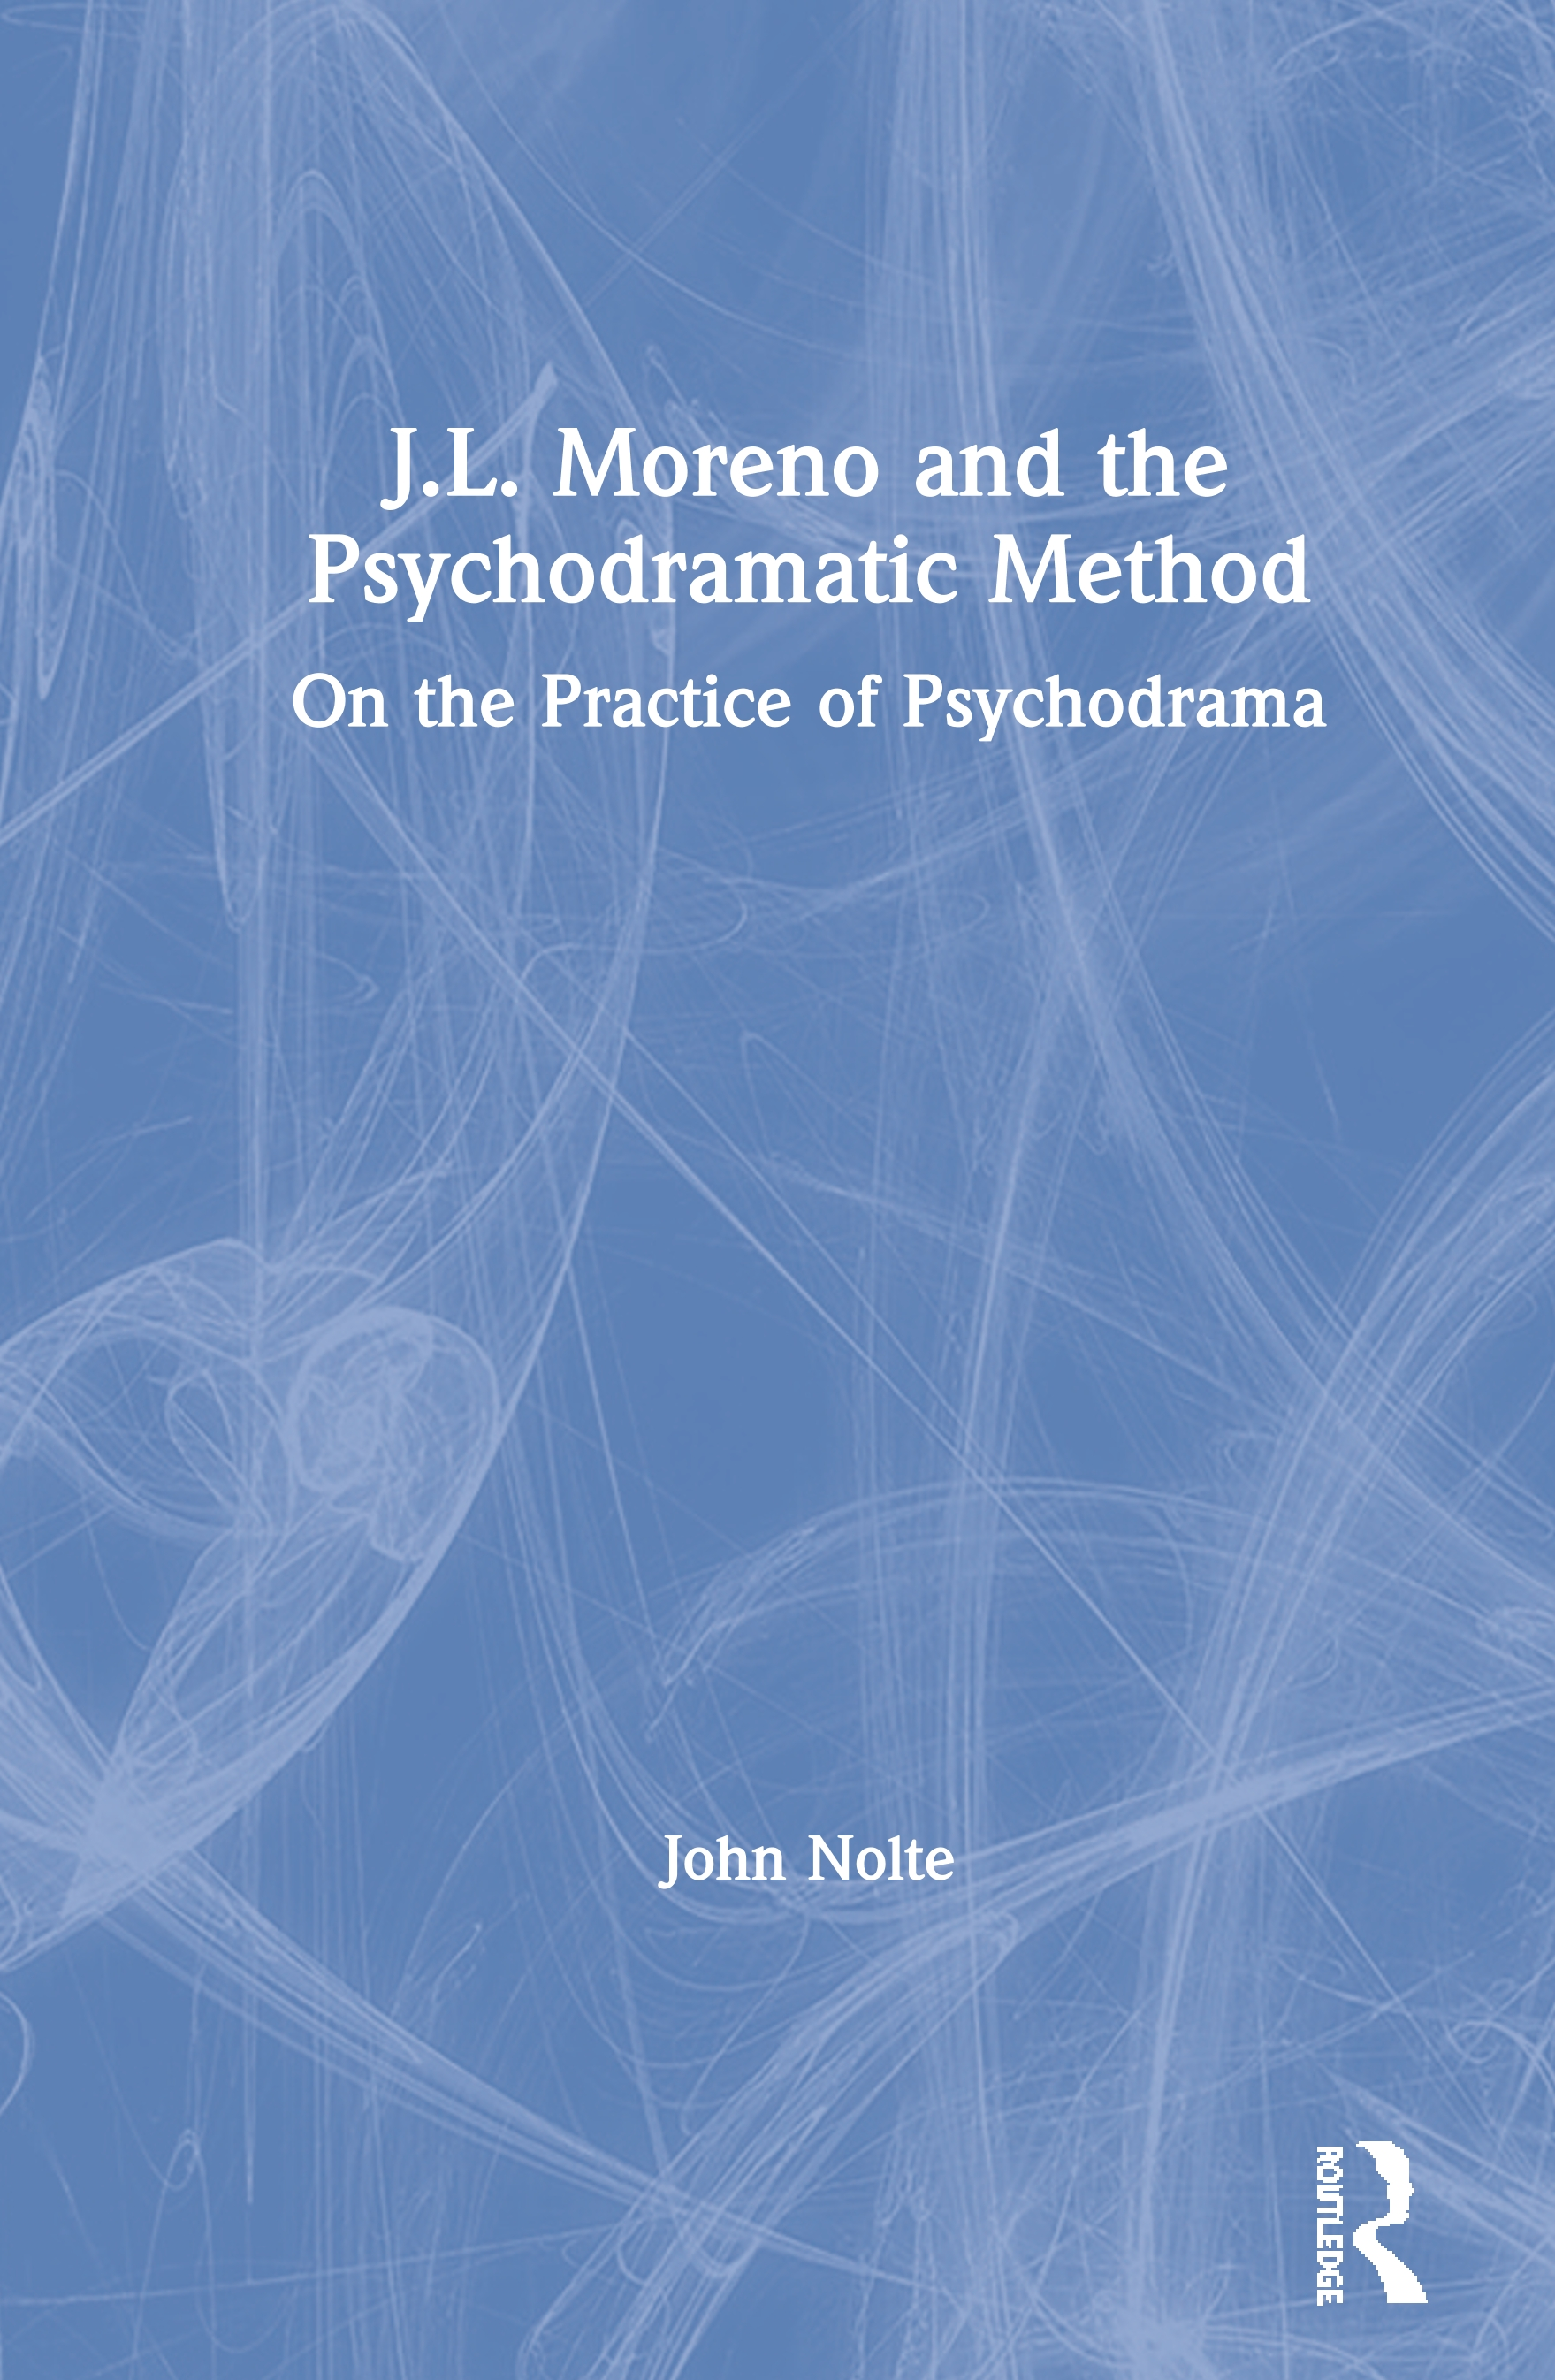 J.L. Moreno and the Psychodramatic Method: On the Practice of Psychodrama book cover